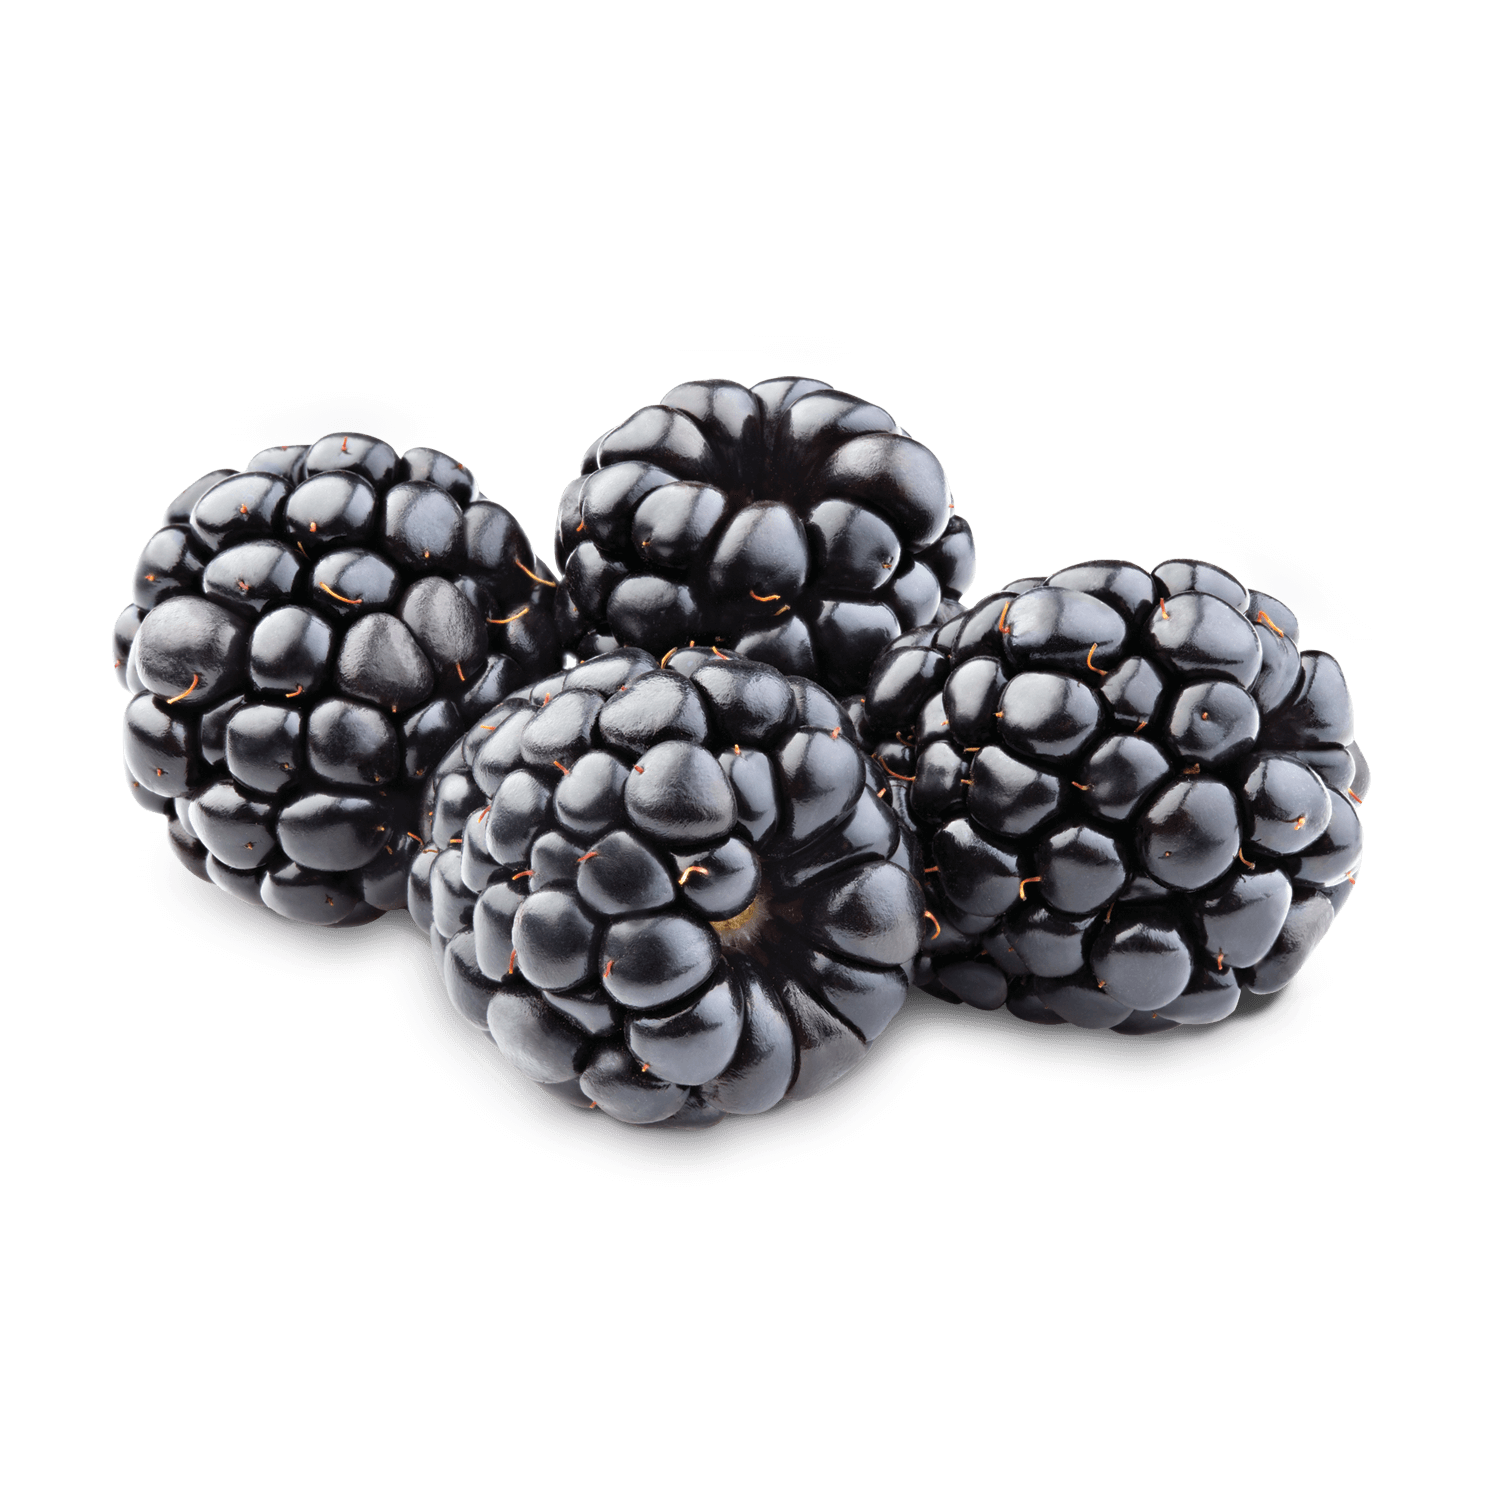 Blackberry Fruit PNG Photo 210x210 - Blackberry Fruit PNG Transparent Free  Images - Blackberry PNG